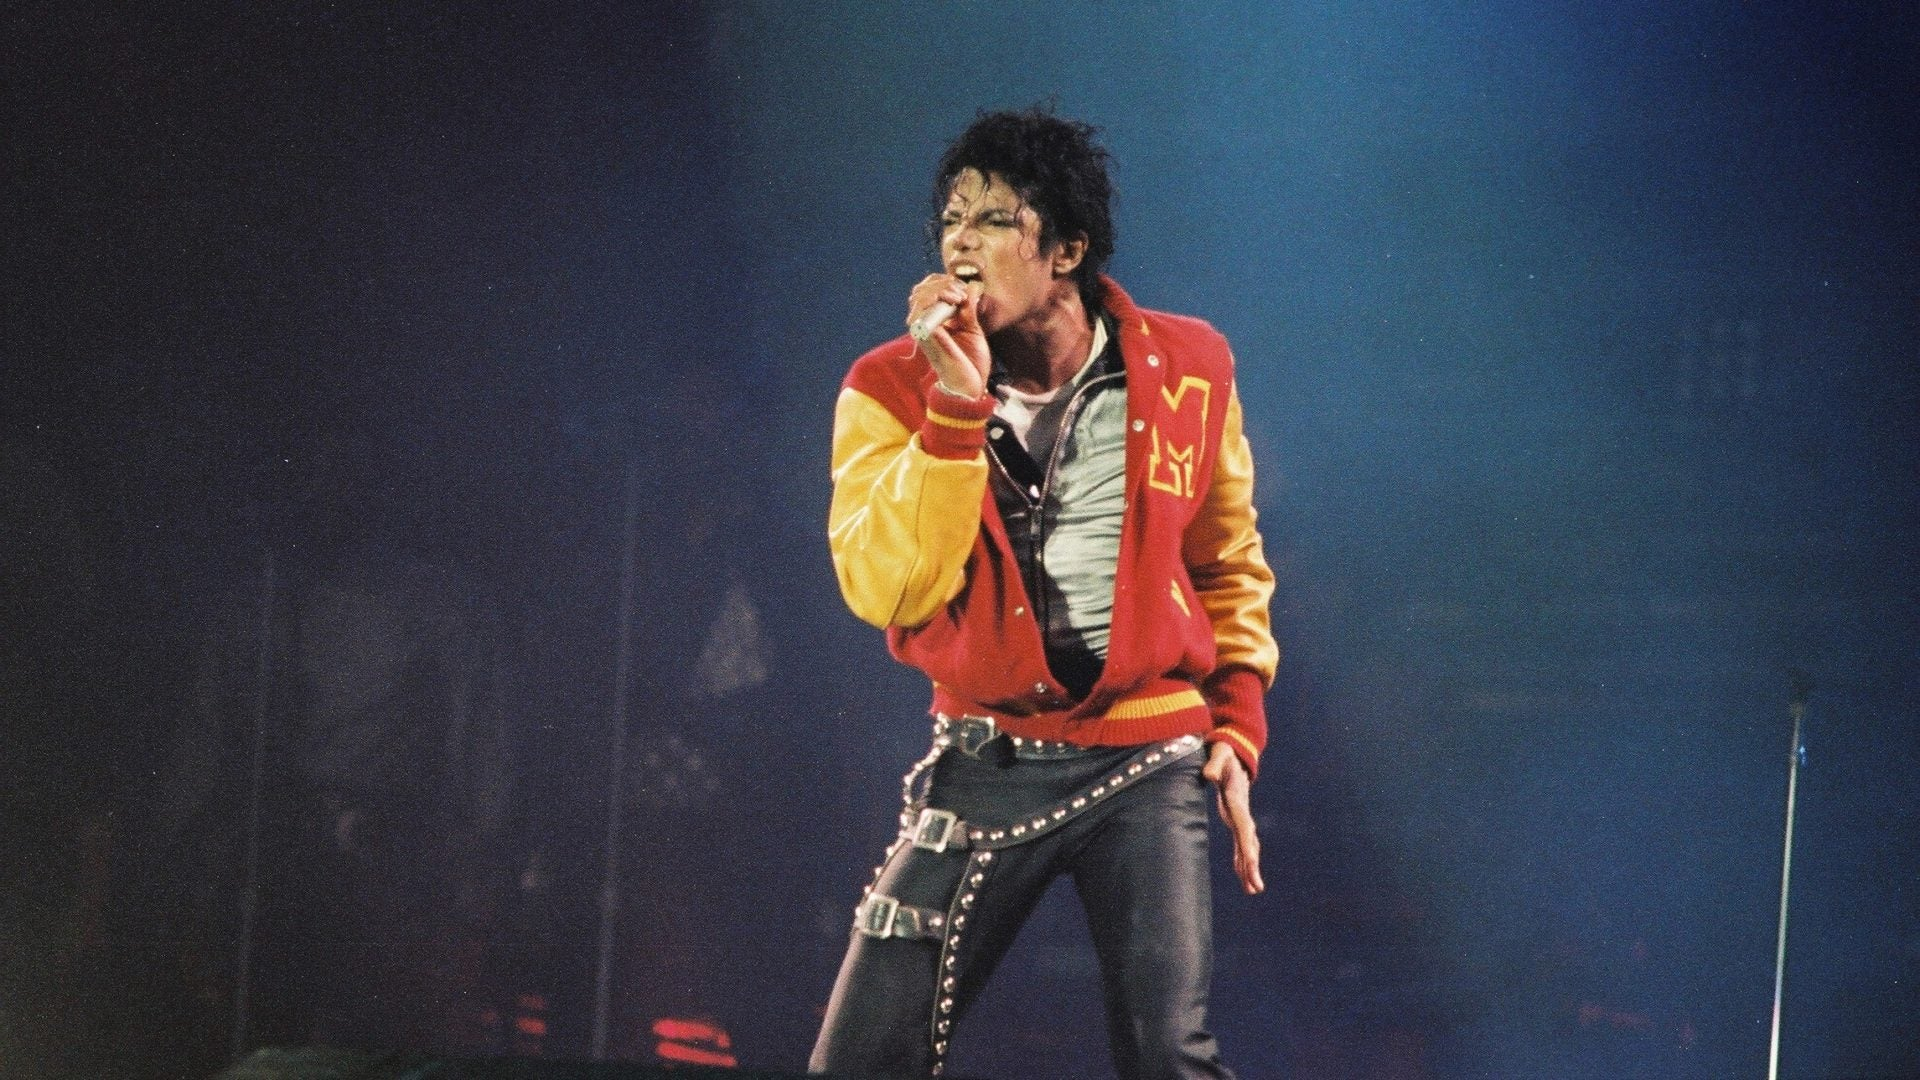 Michael Jackson's Estate Remembers Him As 'Gifted' 10 Years After Death